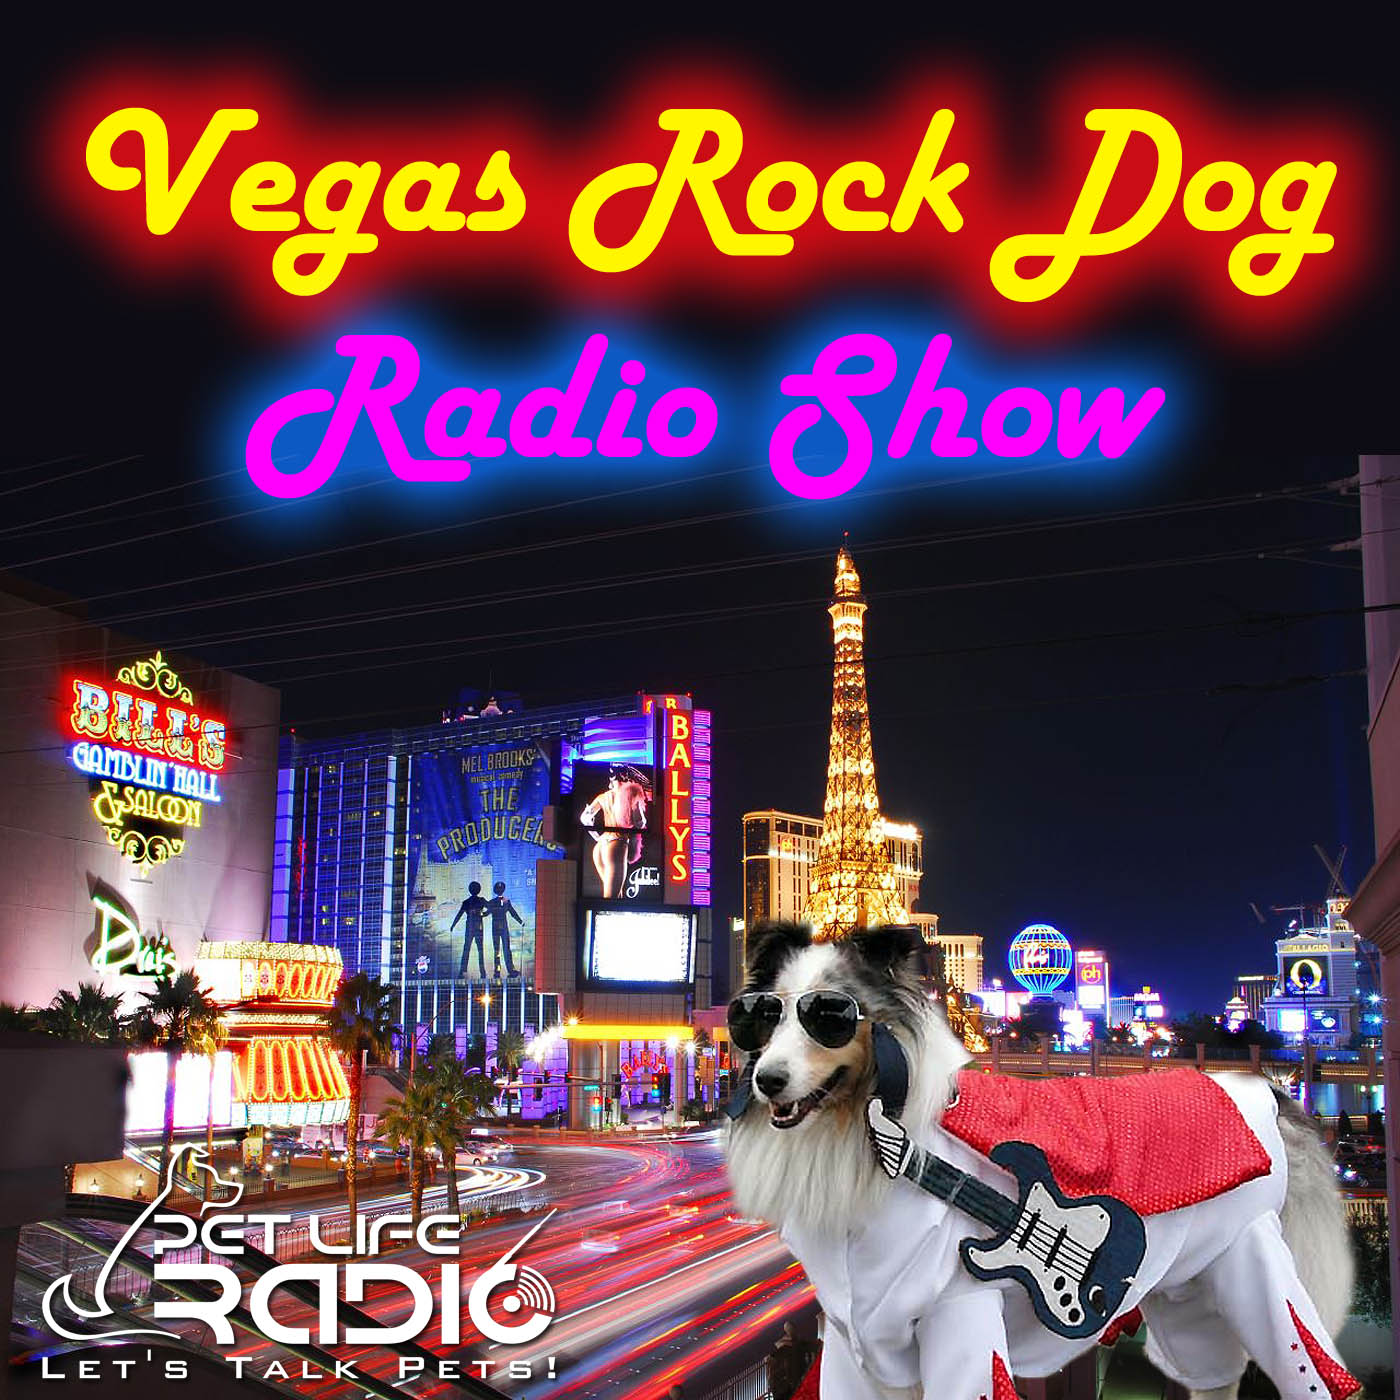 Vegas Rock Dog Radio Show on Pet Life Radio (PetLifeRadio.com)